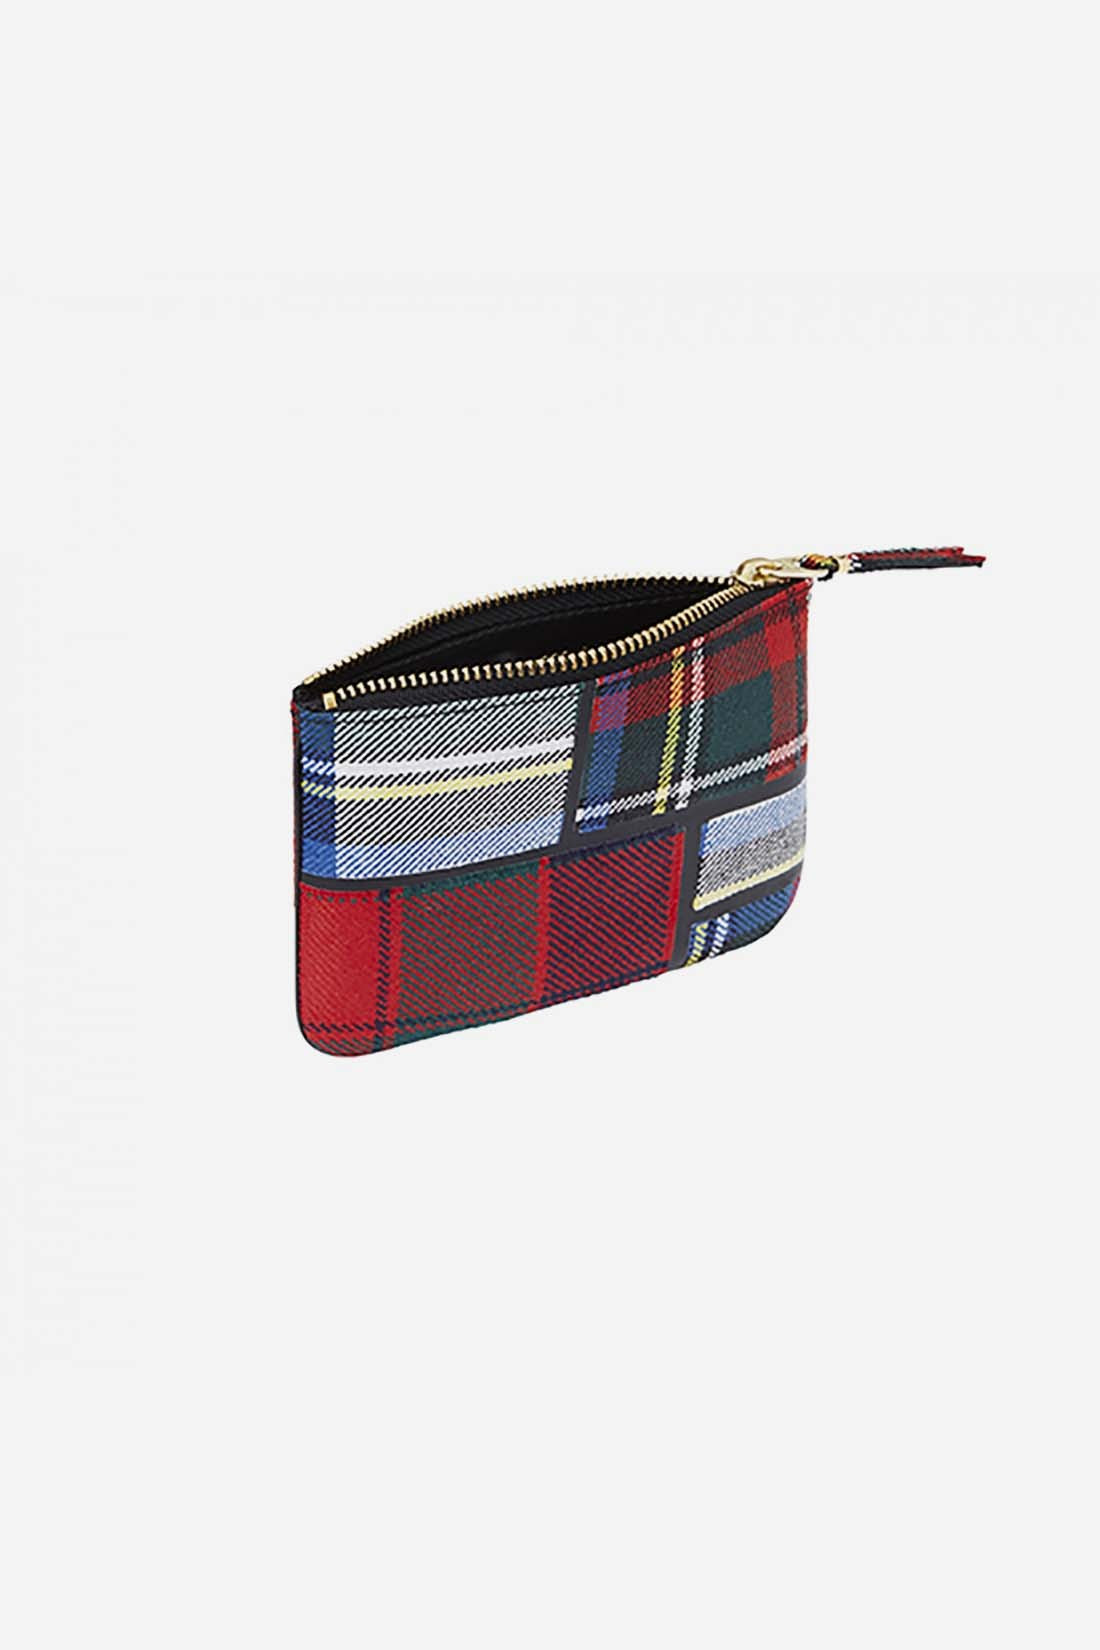 CDG WALLETS / Cdg tartan patchwork sa8100tp Red